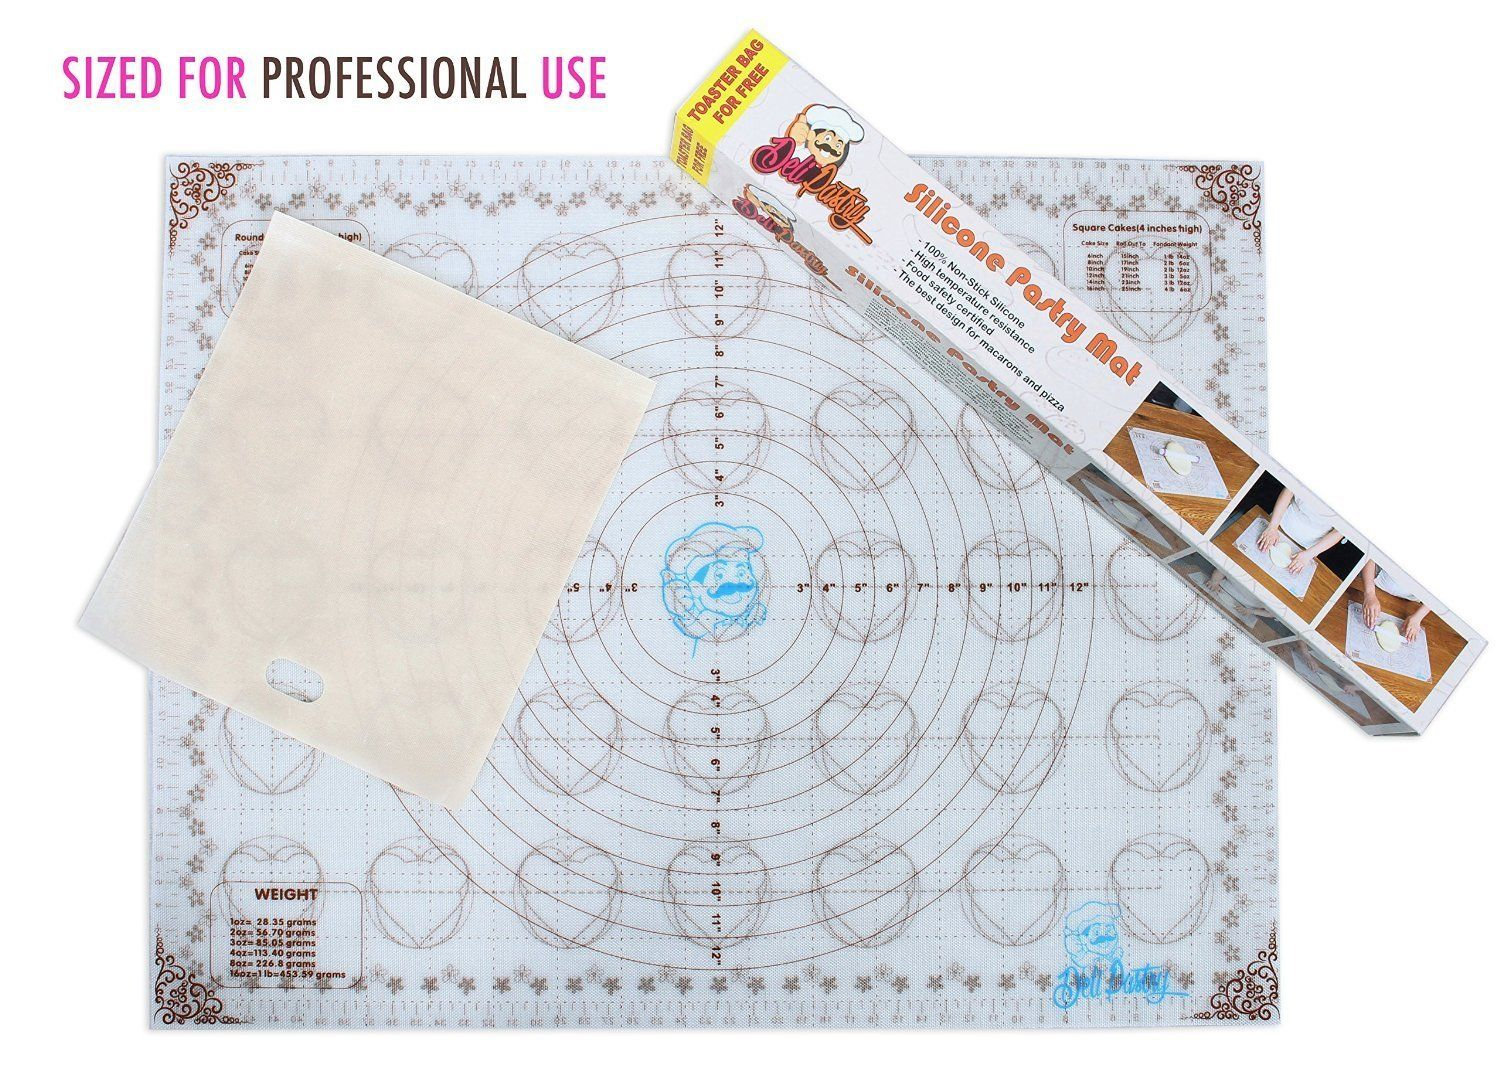 New Large Deli Professional Silicone Baking Mat with Measurements ...